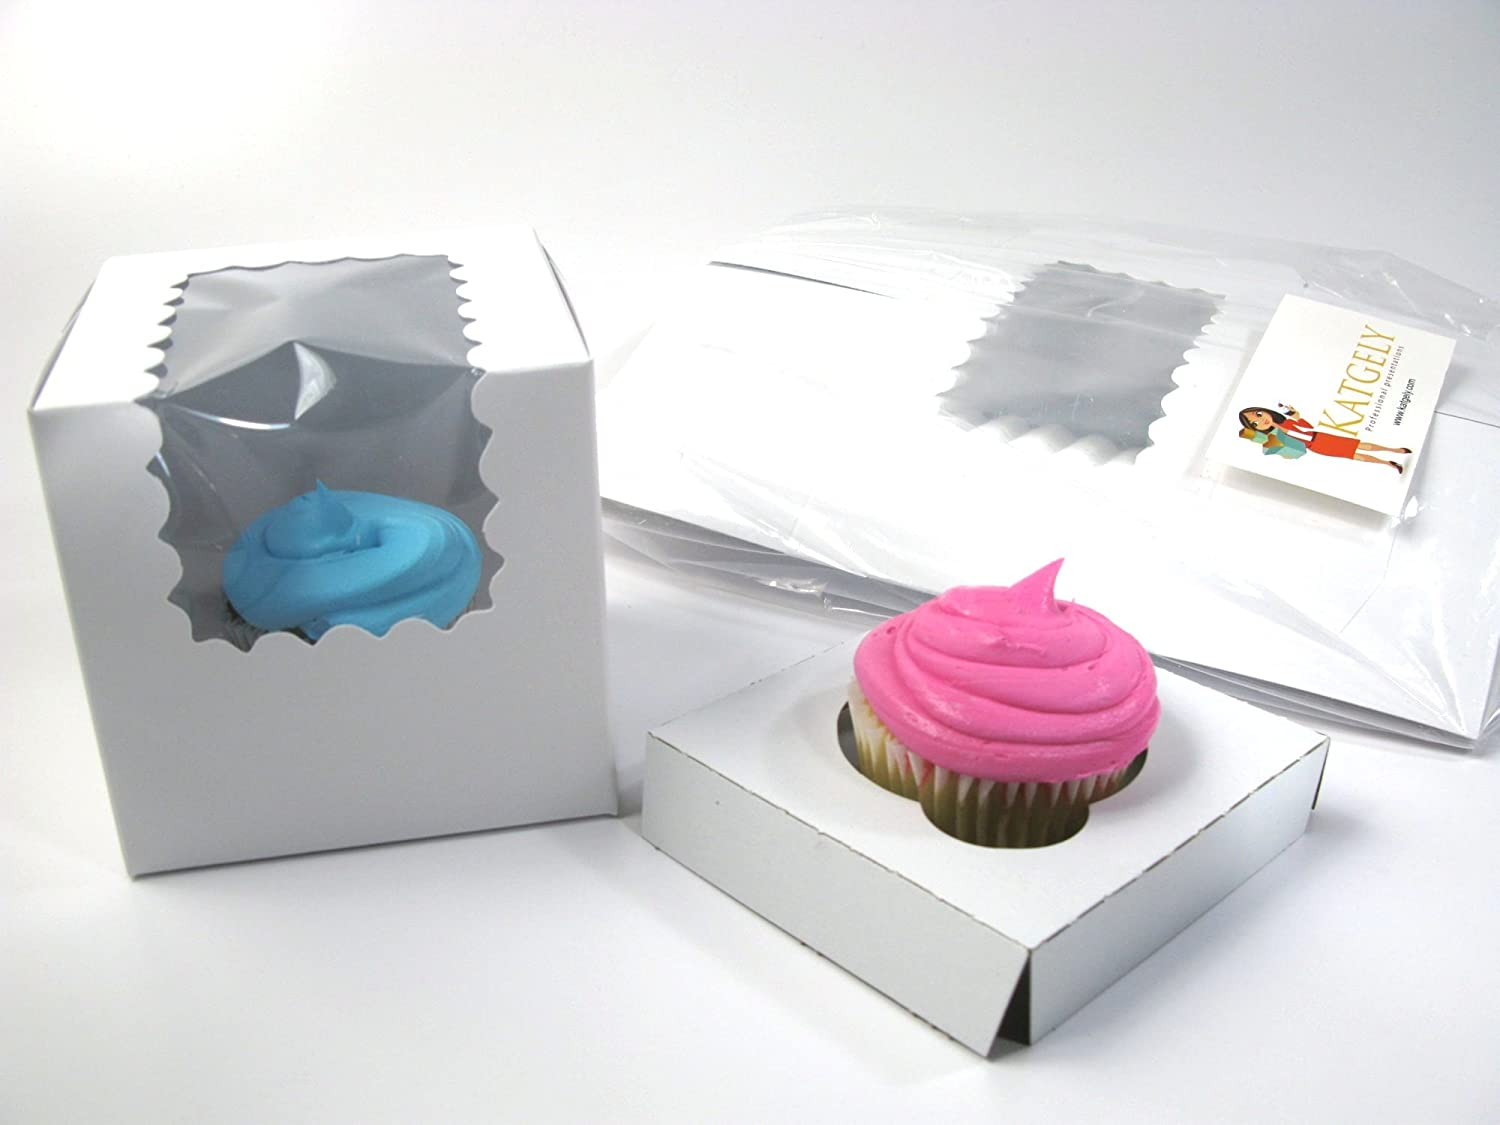 Amazon.com: Katgely Individual Cupcake Boxes with Insert, Pack of 20 ...